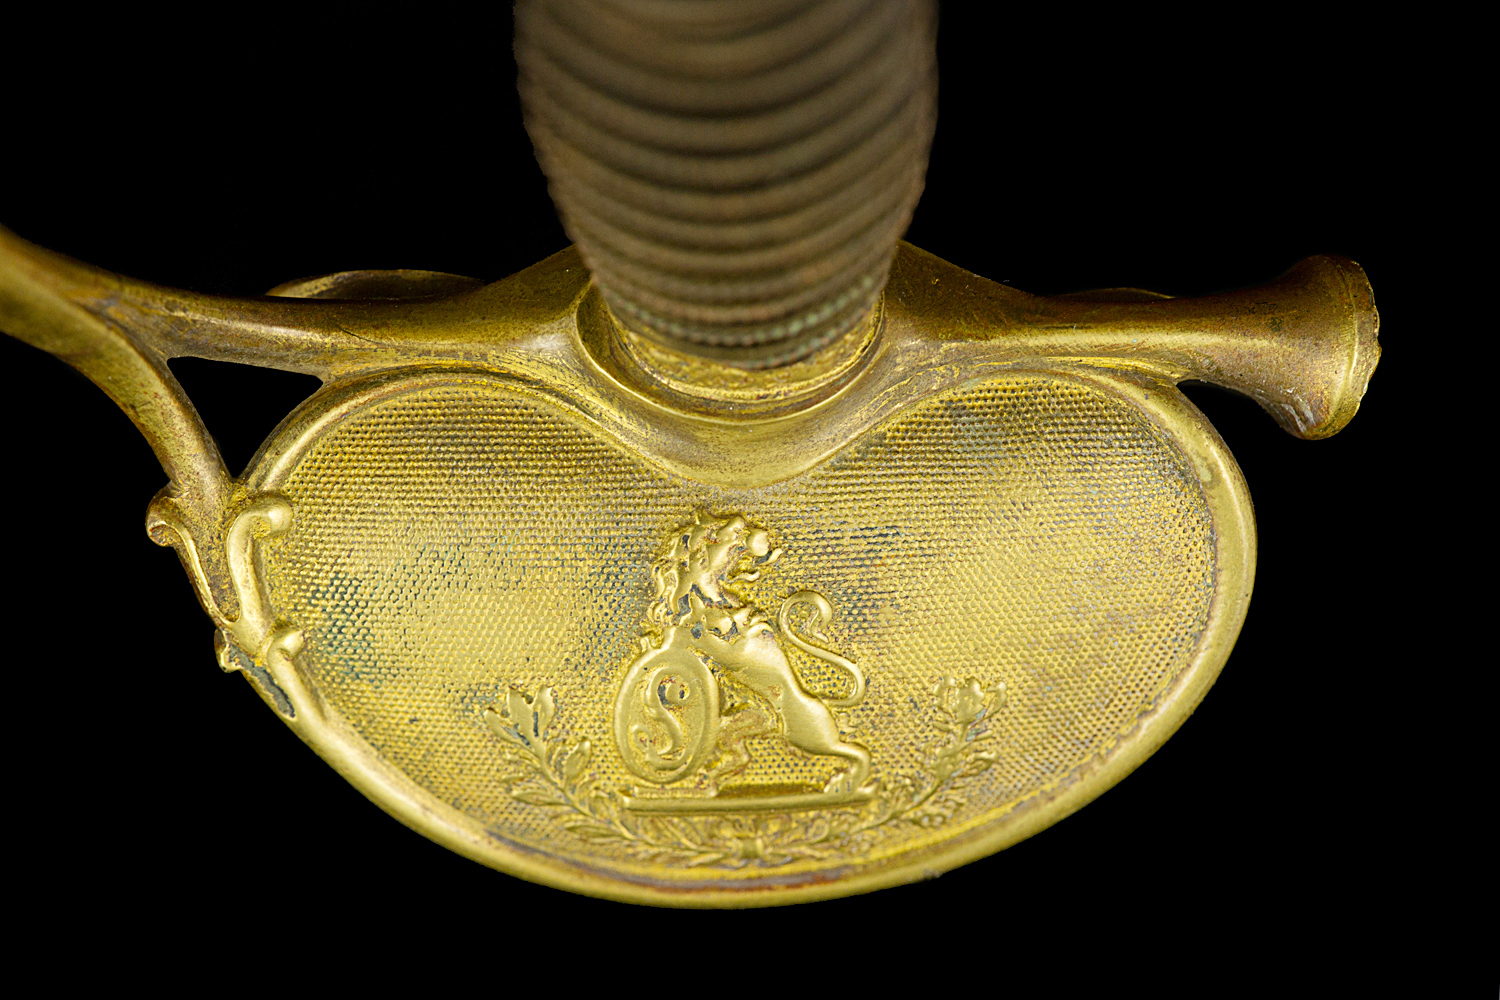 S000055_Belgian_Smallsword_Detail_Shell_Obverse